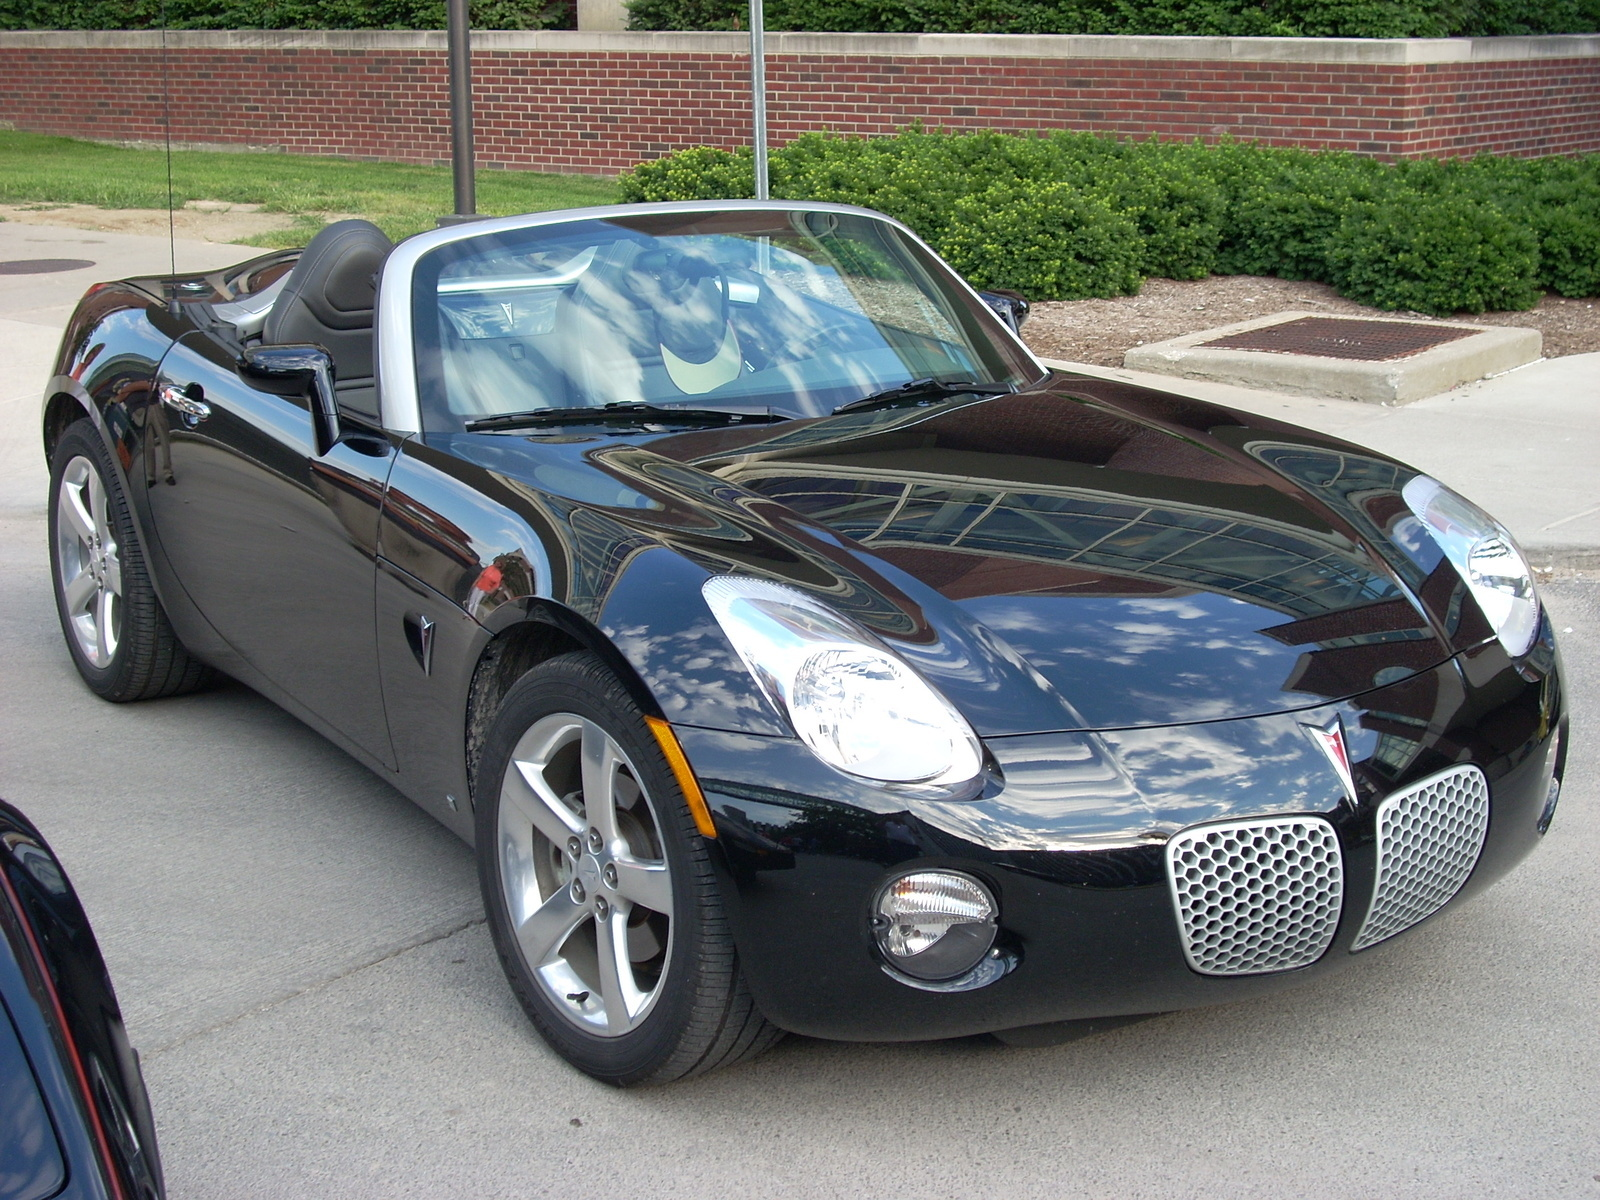 2006 chrysler crossfire srt6. picture of 2006 pontiac solstice roadster exterior gallery_worthy chrysler crossfire srt6